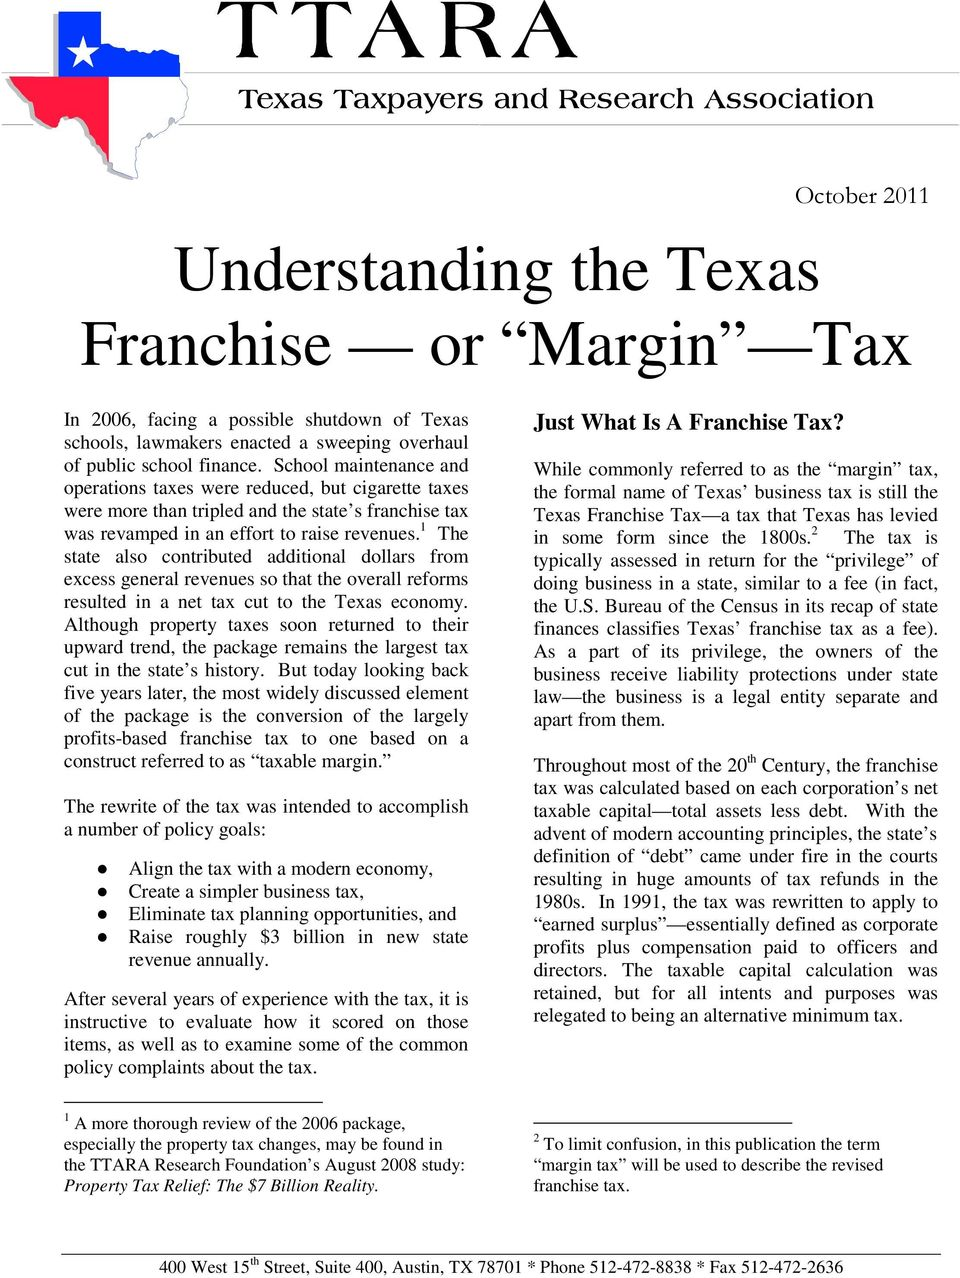 1 The state also contributed additional dollars from excess general revenues so that the overall reforms resulted in a net tax cut to the Texas economy.